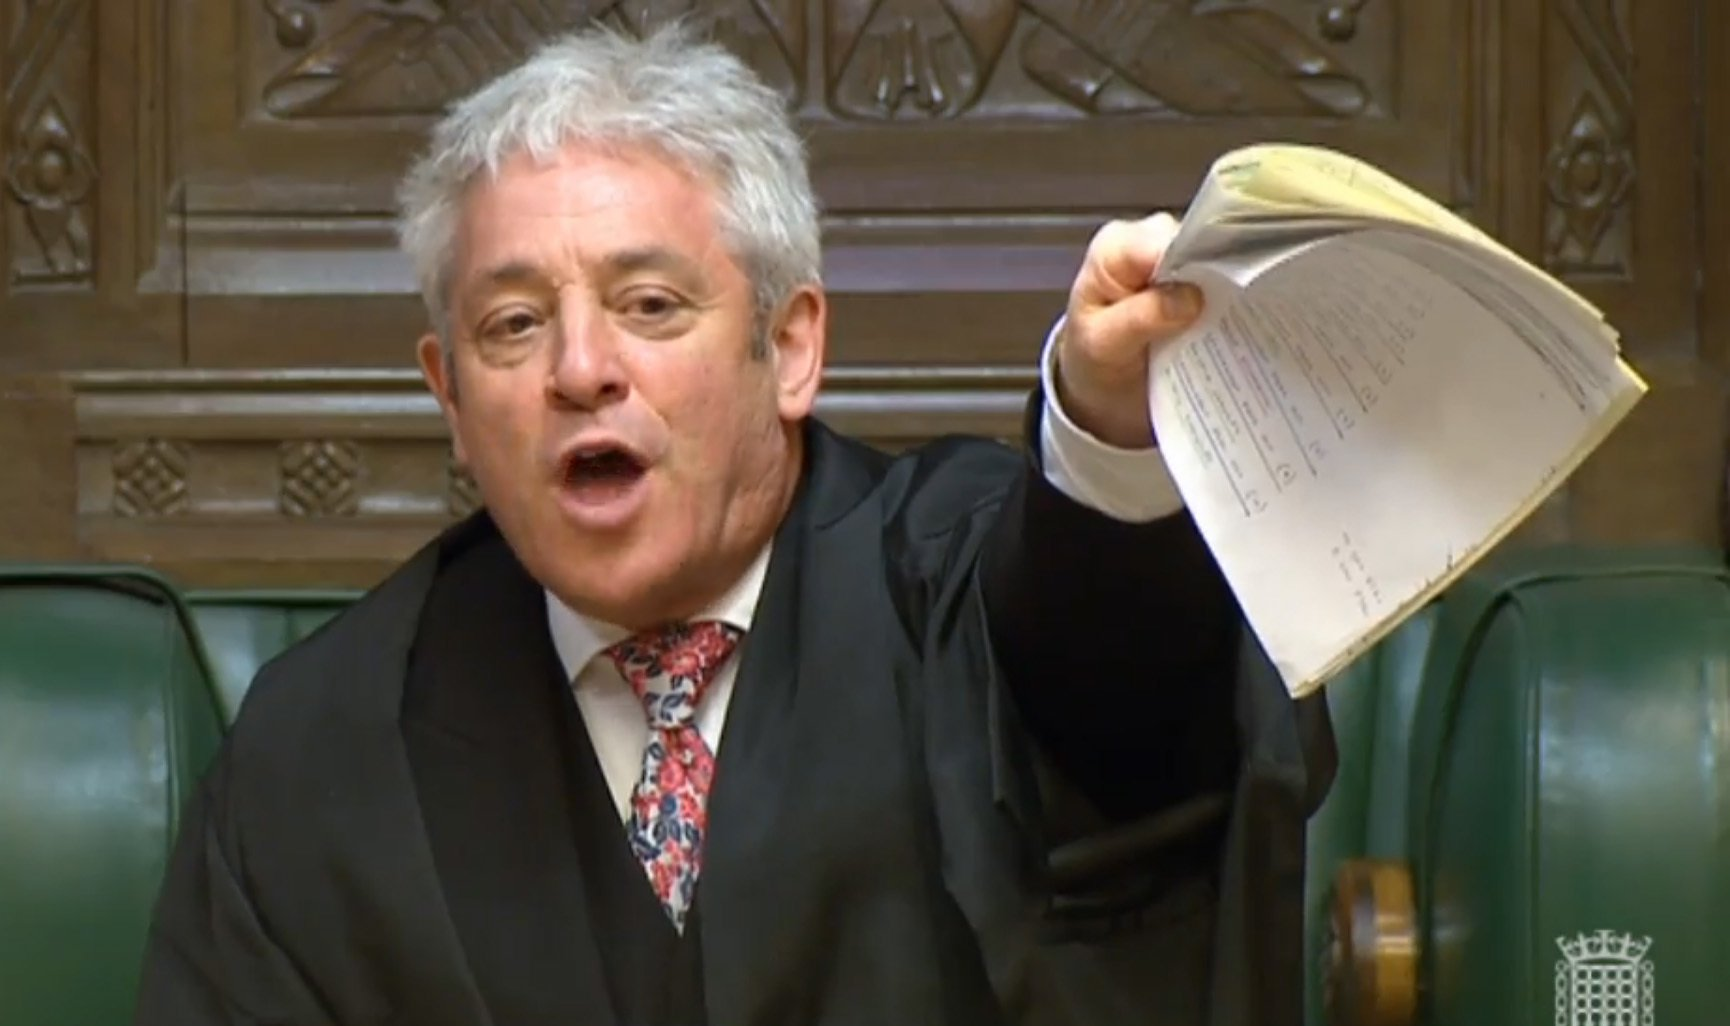 Commons Speaker John Bercow told to quit over bullying claims